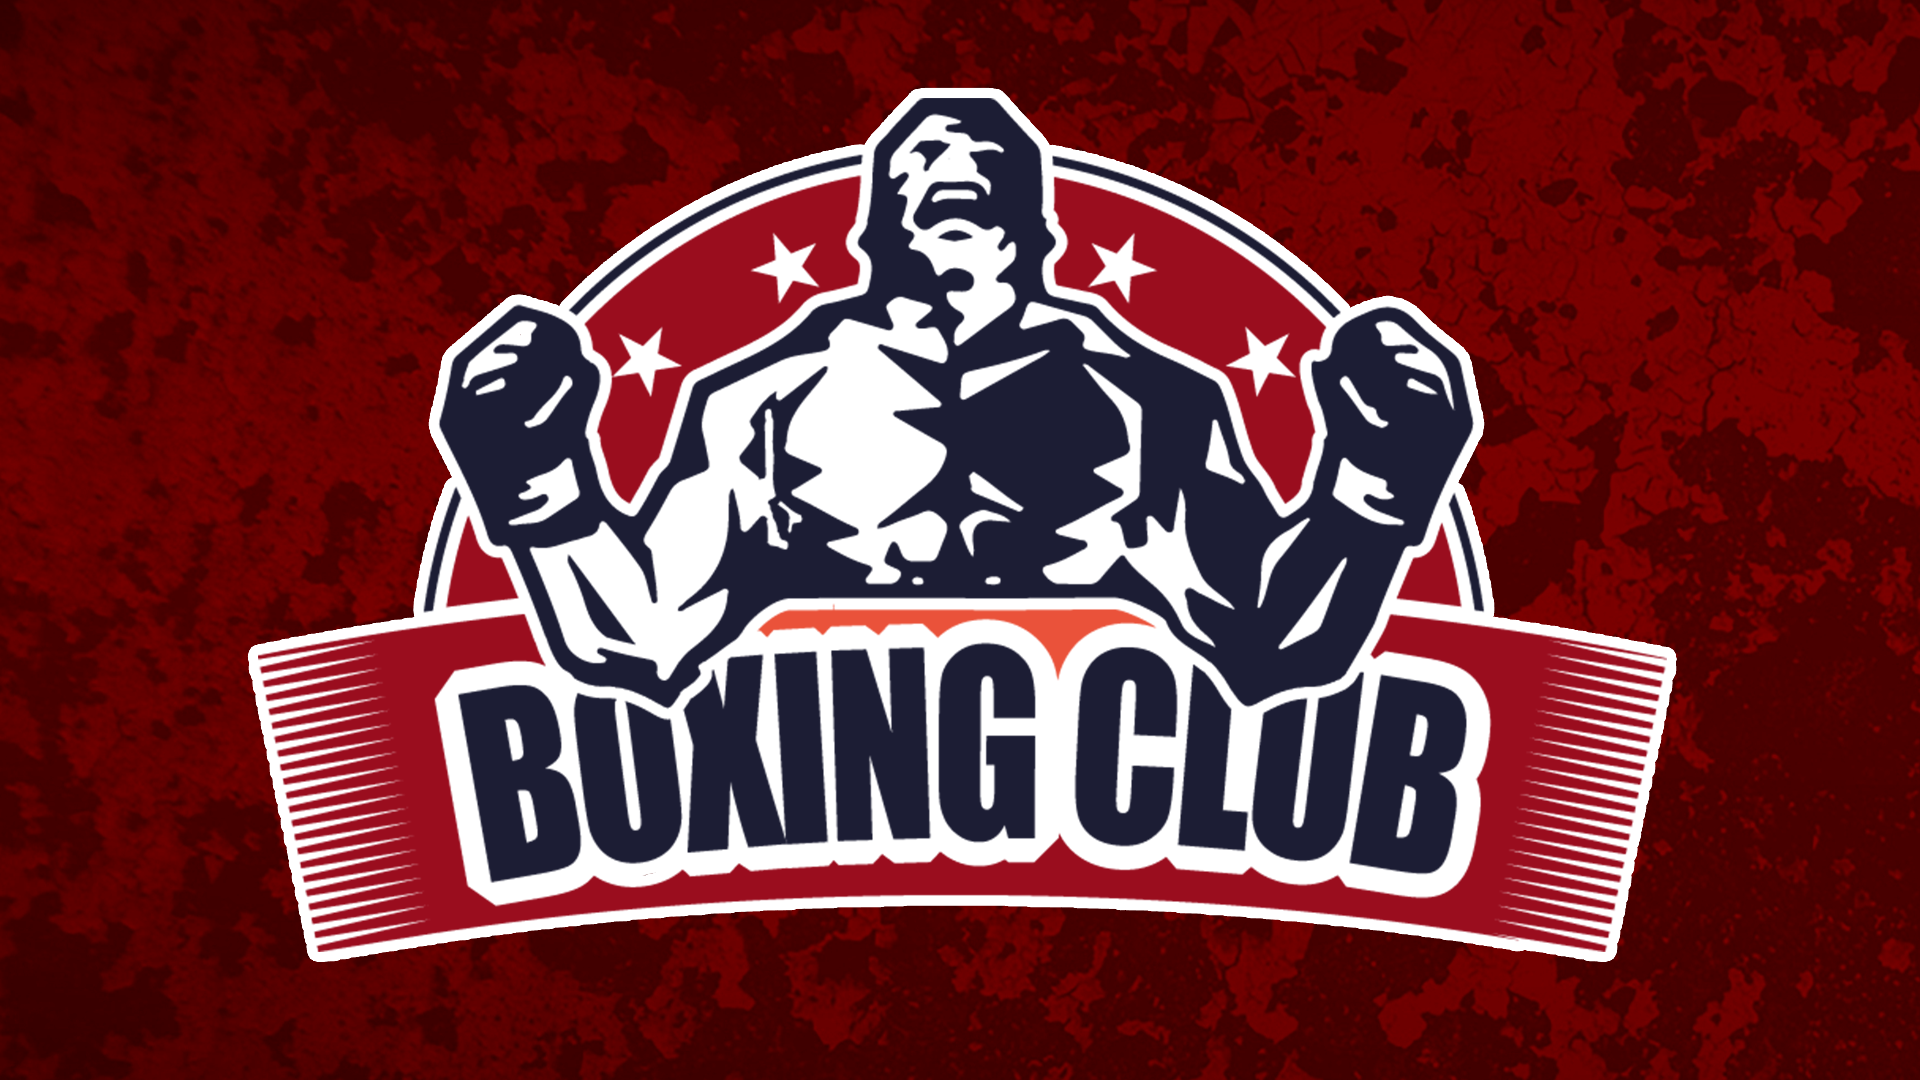 Icon for IN BOXING CLUB, THERE IS NO CHAMPION